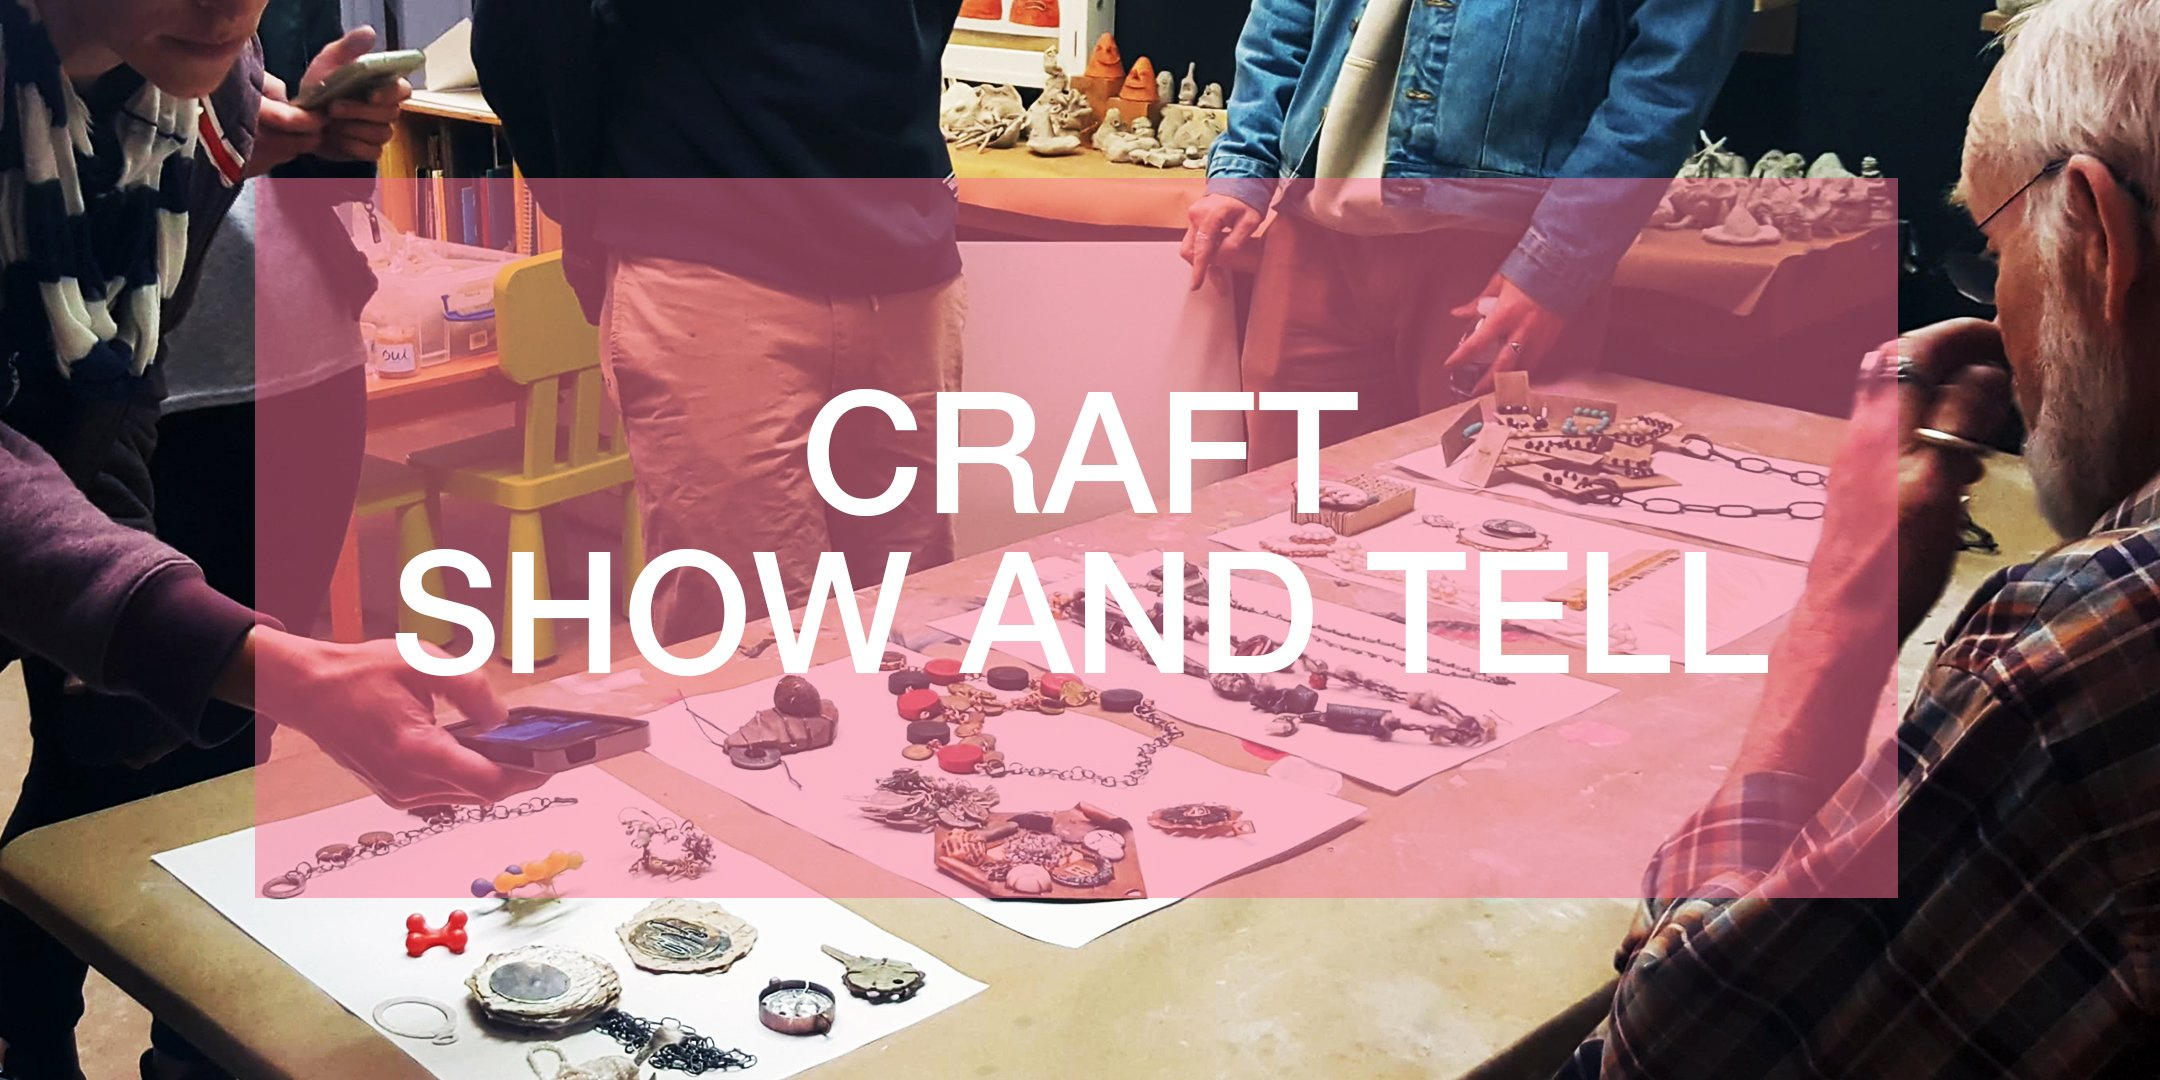 Craft Show and Tell